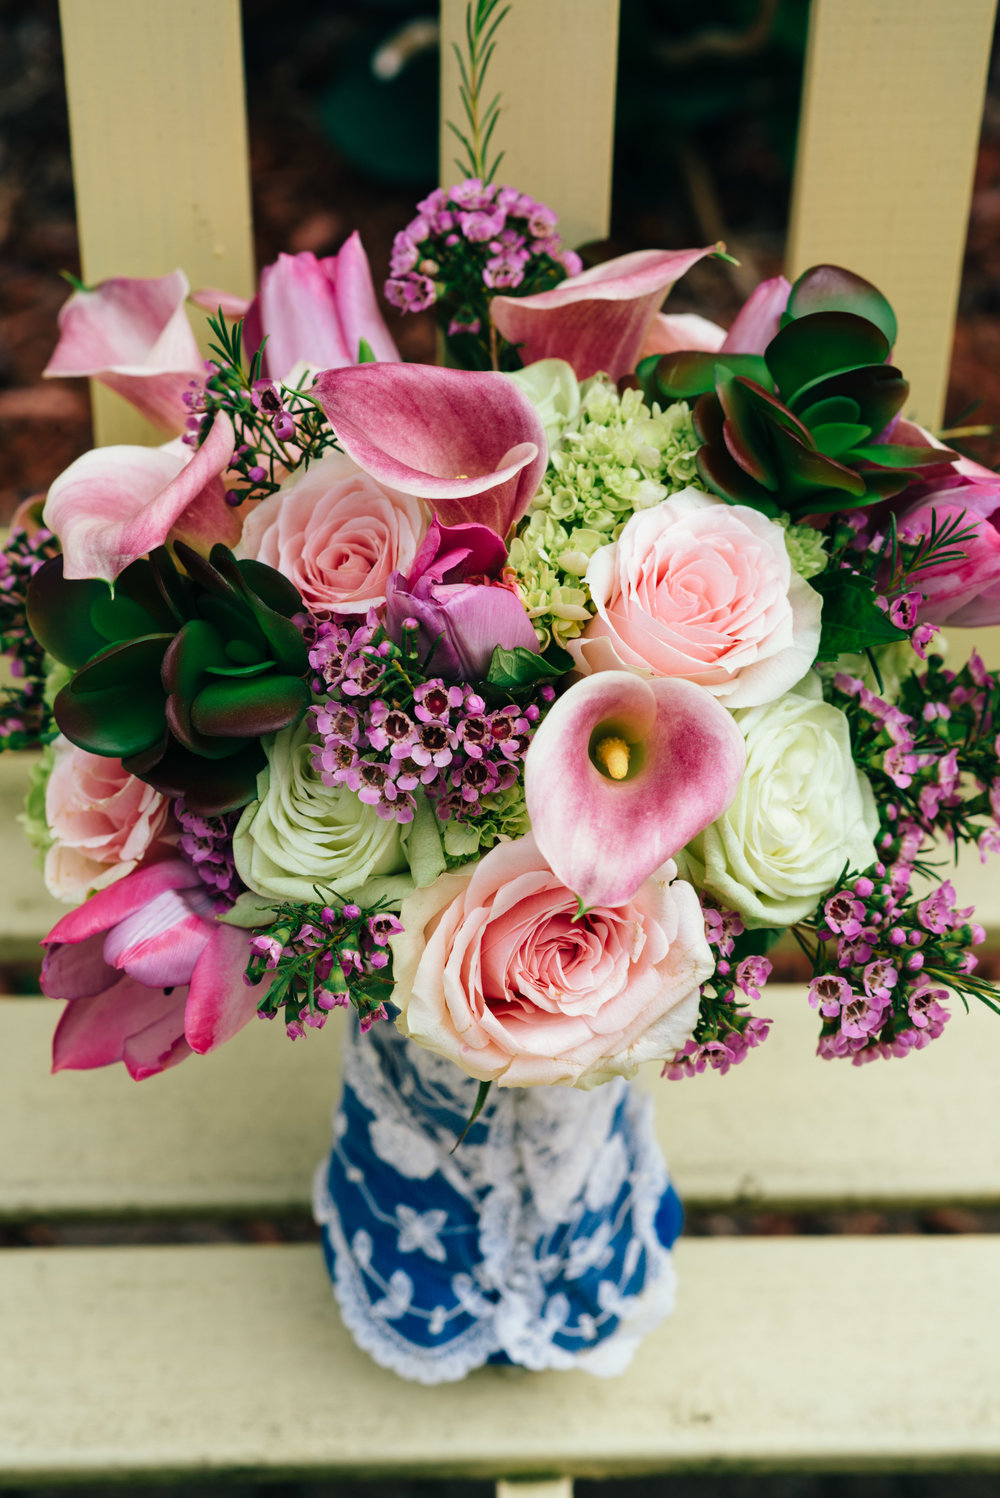 Wedding bouquet by Wedding Elegance by Joelle featuring pink roses, succulents, purple cala lilly's, and purple tulips.